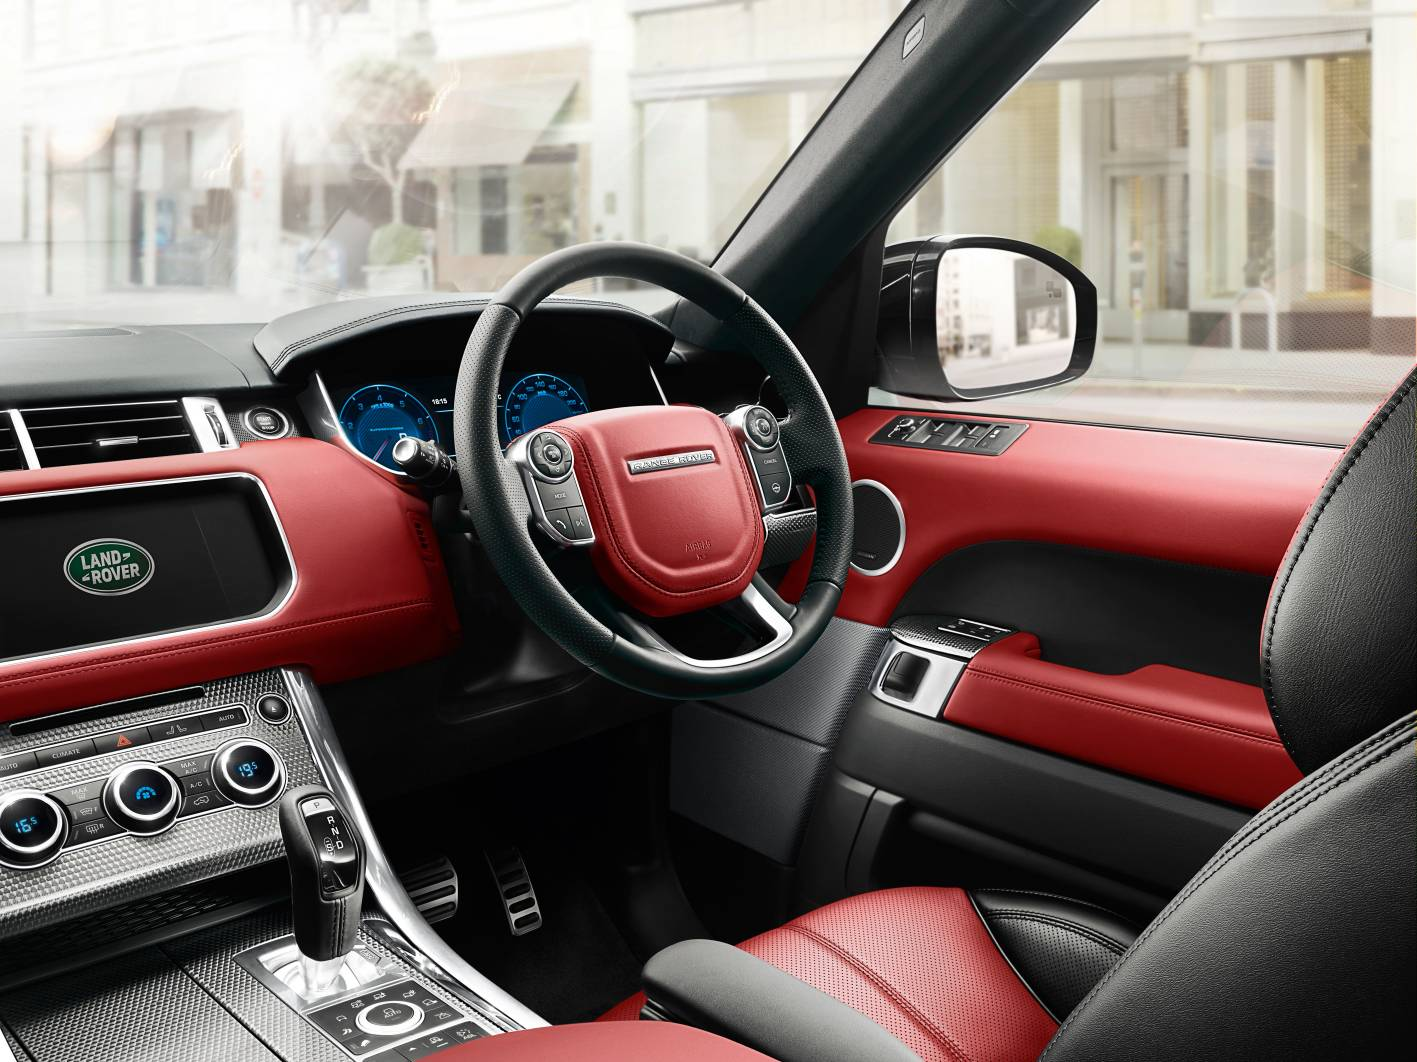 2014 range rover sport red interior. Black Bedroom Furniture Sets. Home Design Ideas